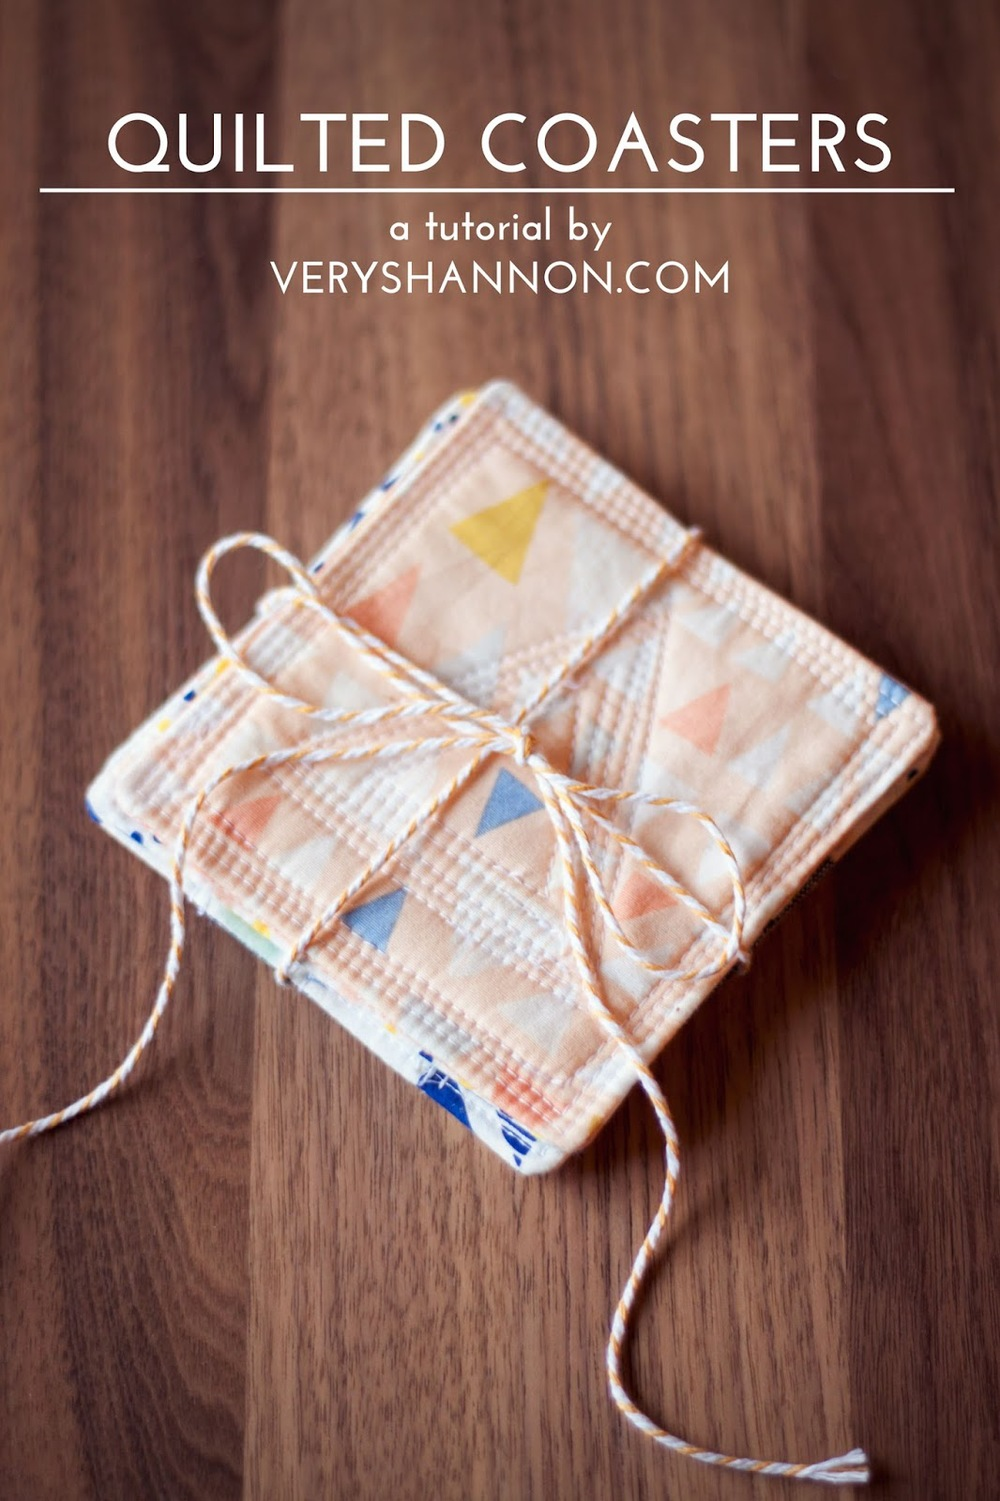 Modern Quilted Coasters Tutorial ||| VeryShannon.com #coaster #quilted #sewing #tutorial